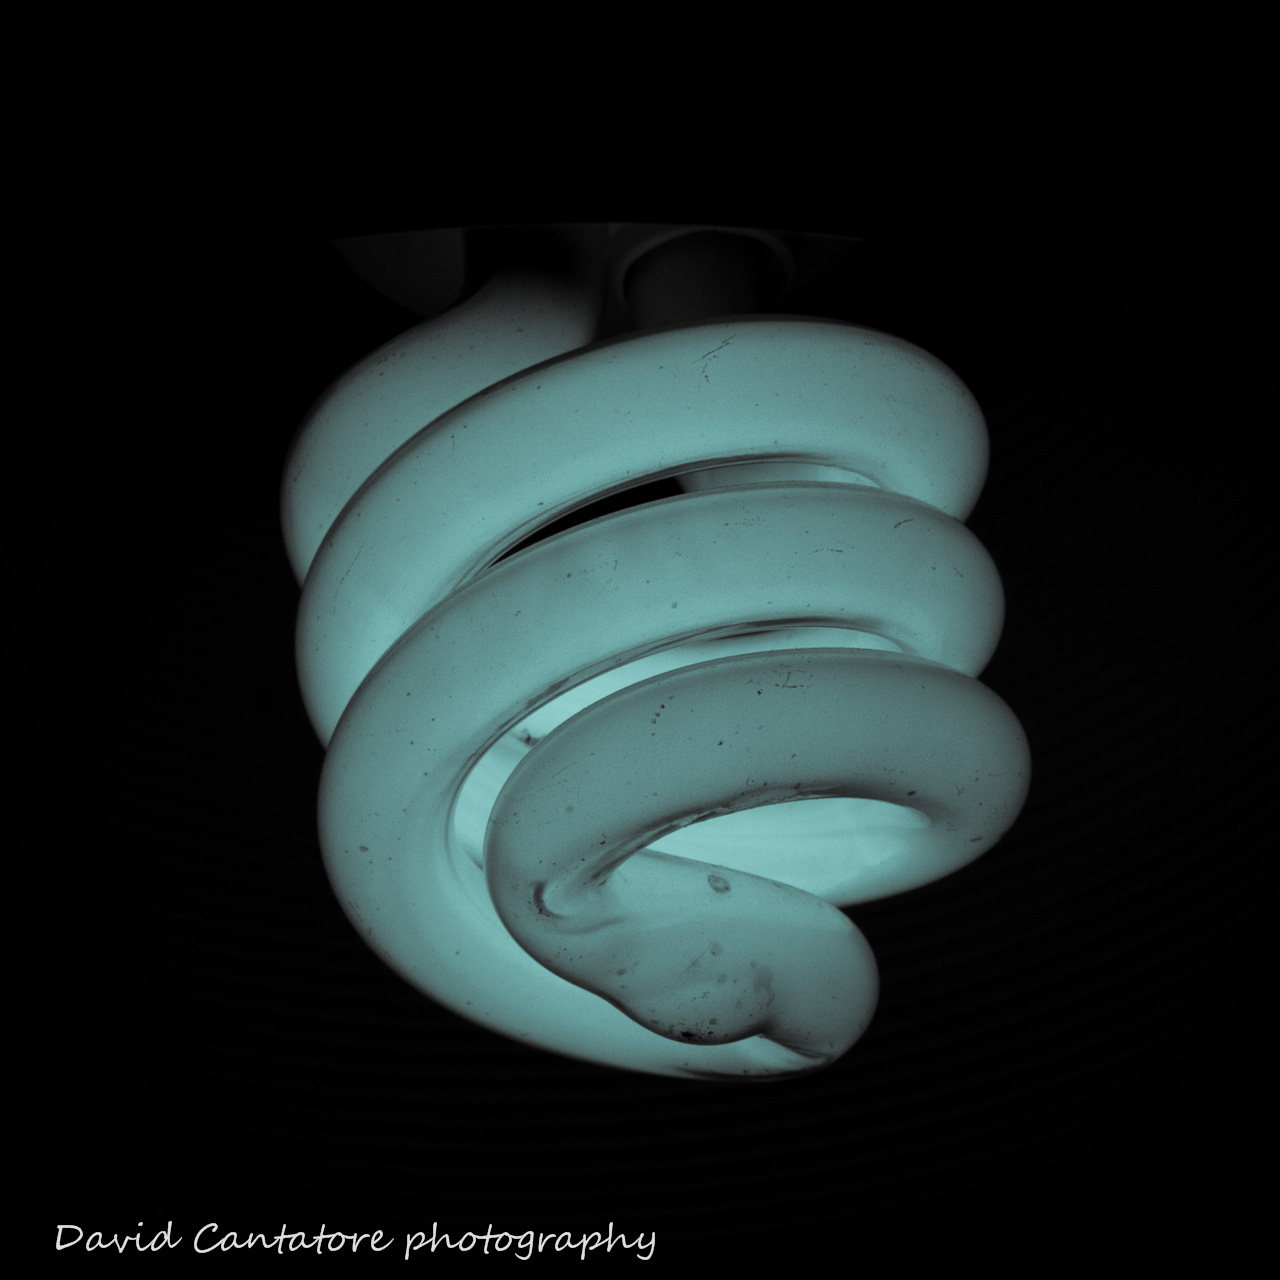 Lightbulb for convoluted, low energy ideas